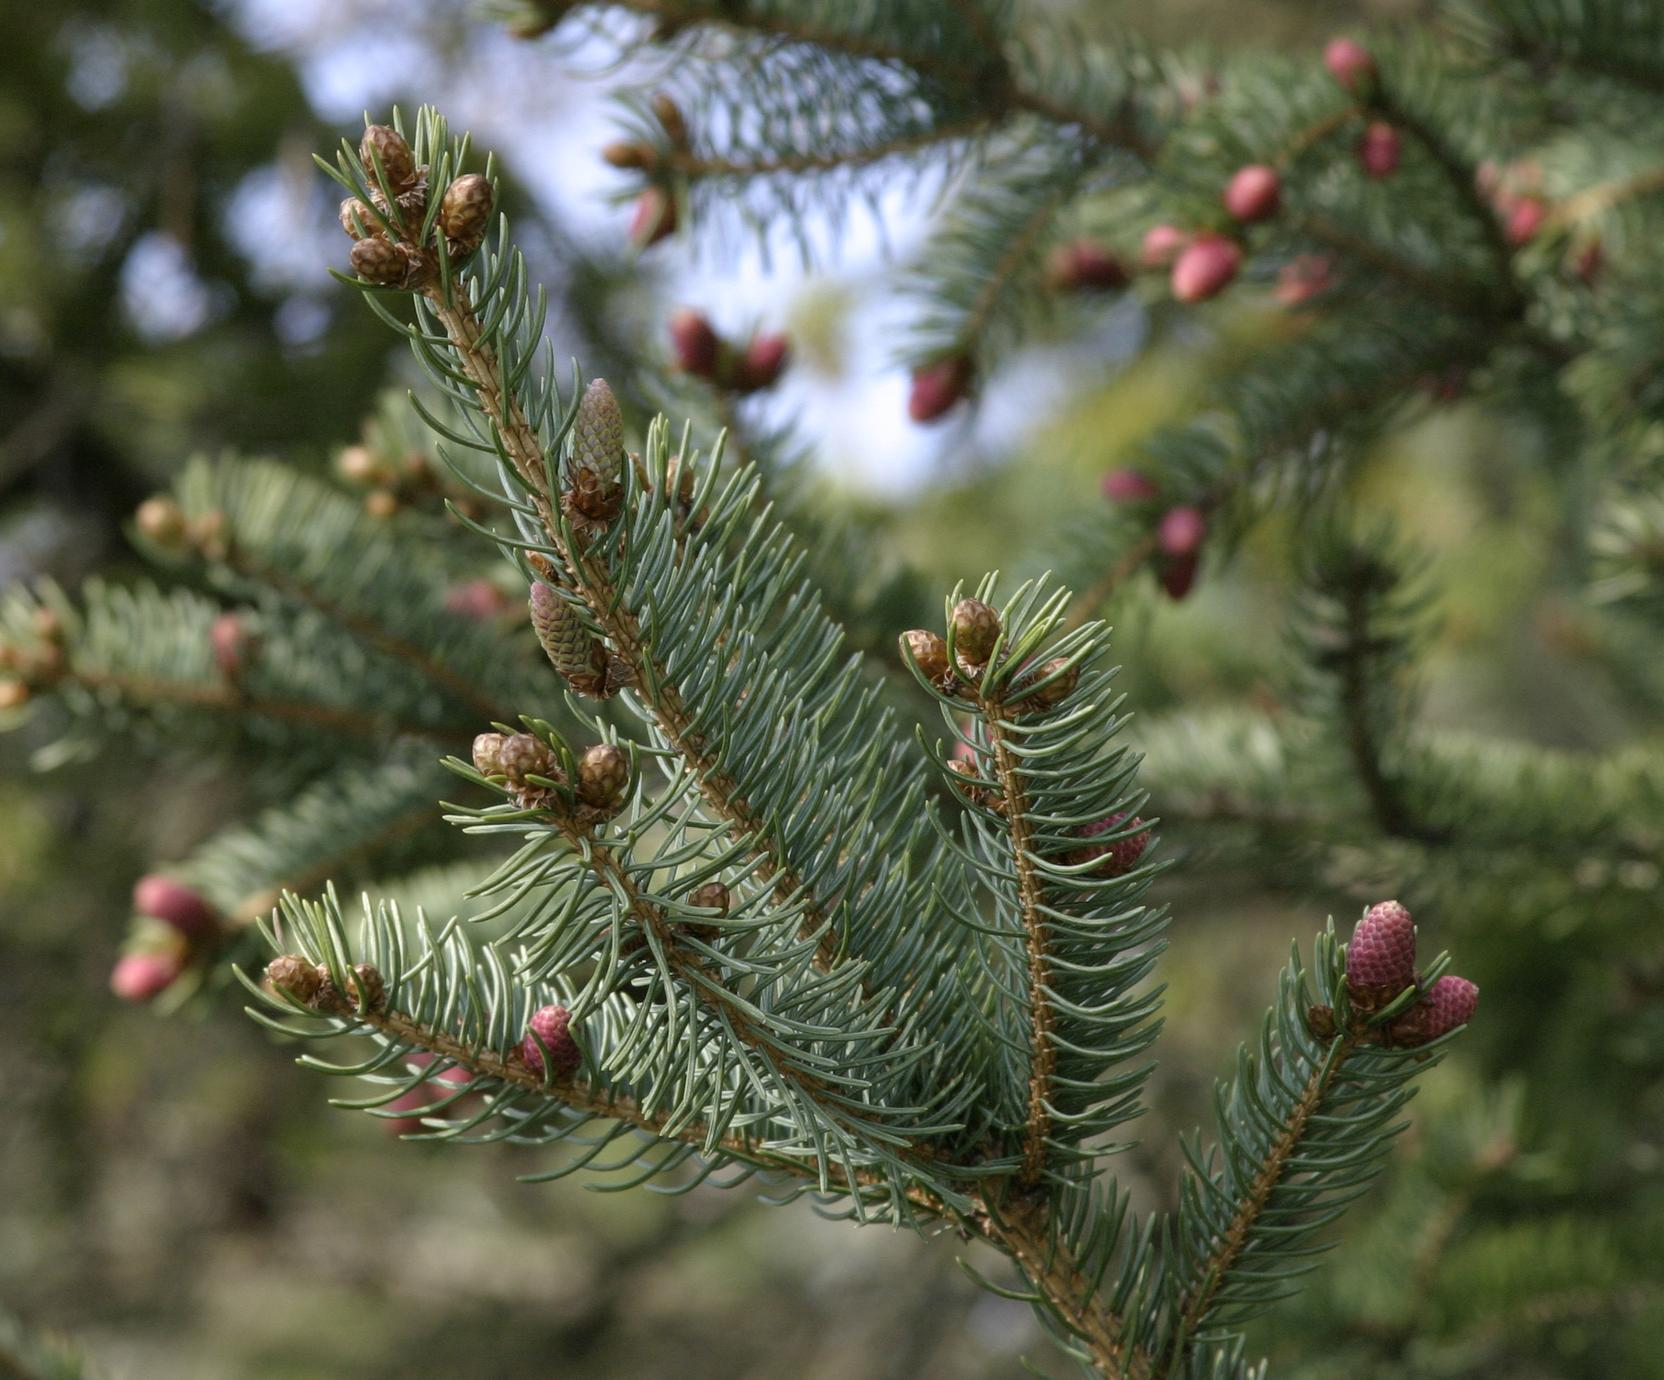 Bough with young ovulate cones and male cones of white spruce